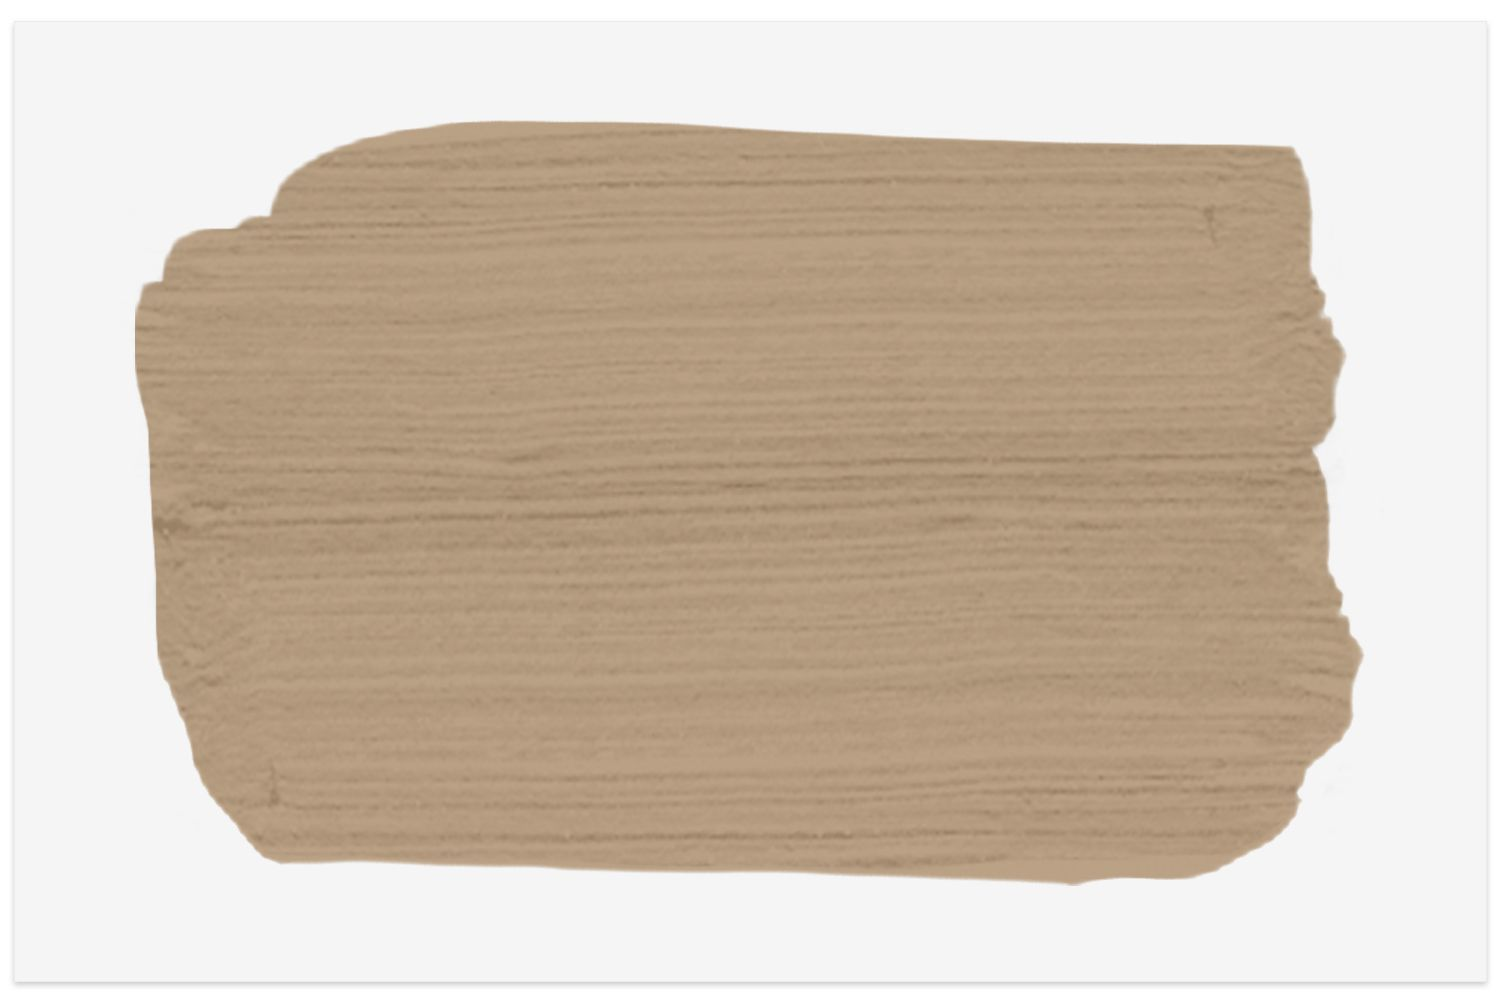 Latte paint swatch from Sherwin-Williams